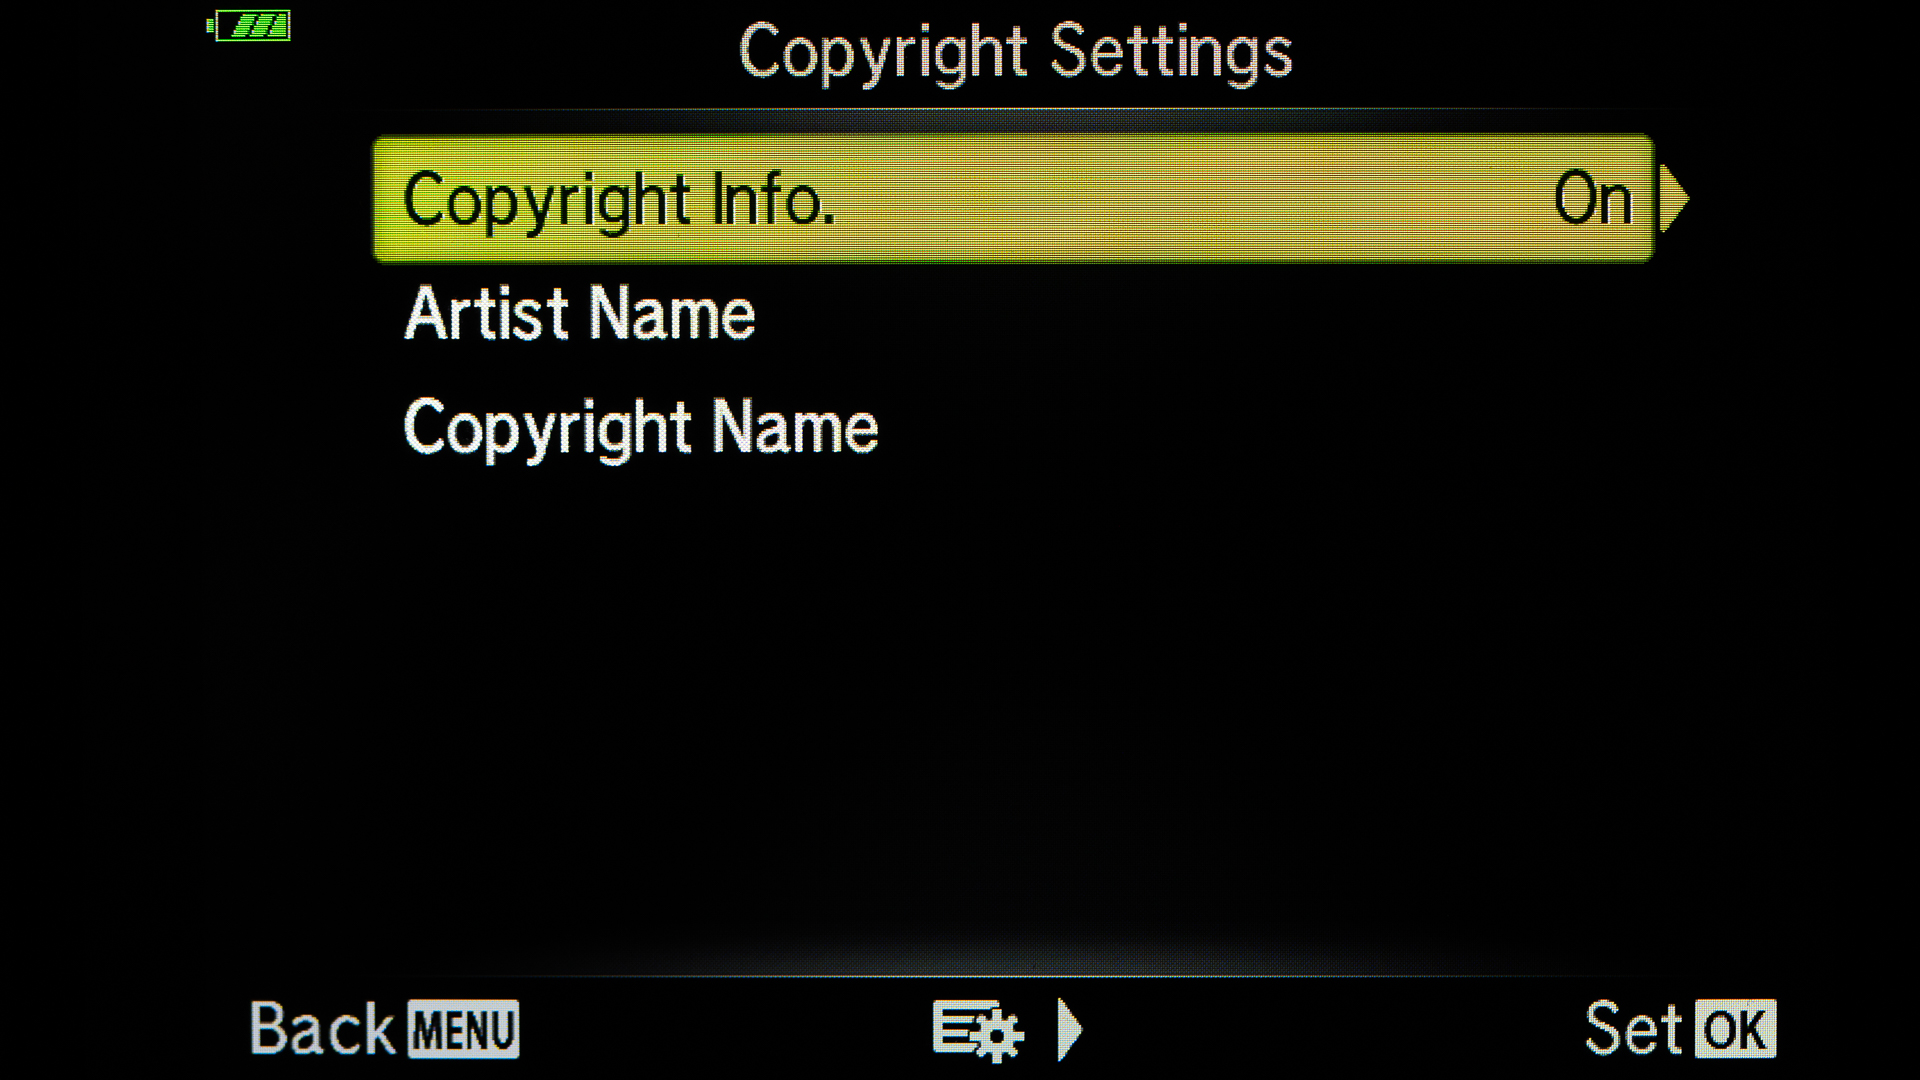 Add copyright info to your images.